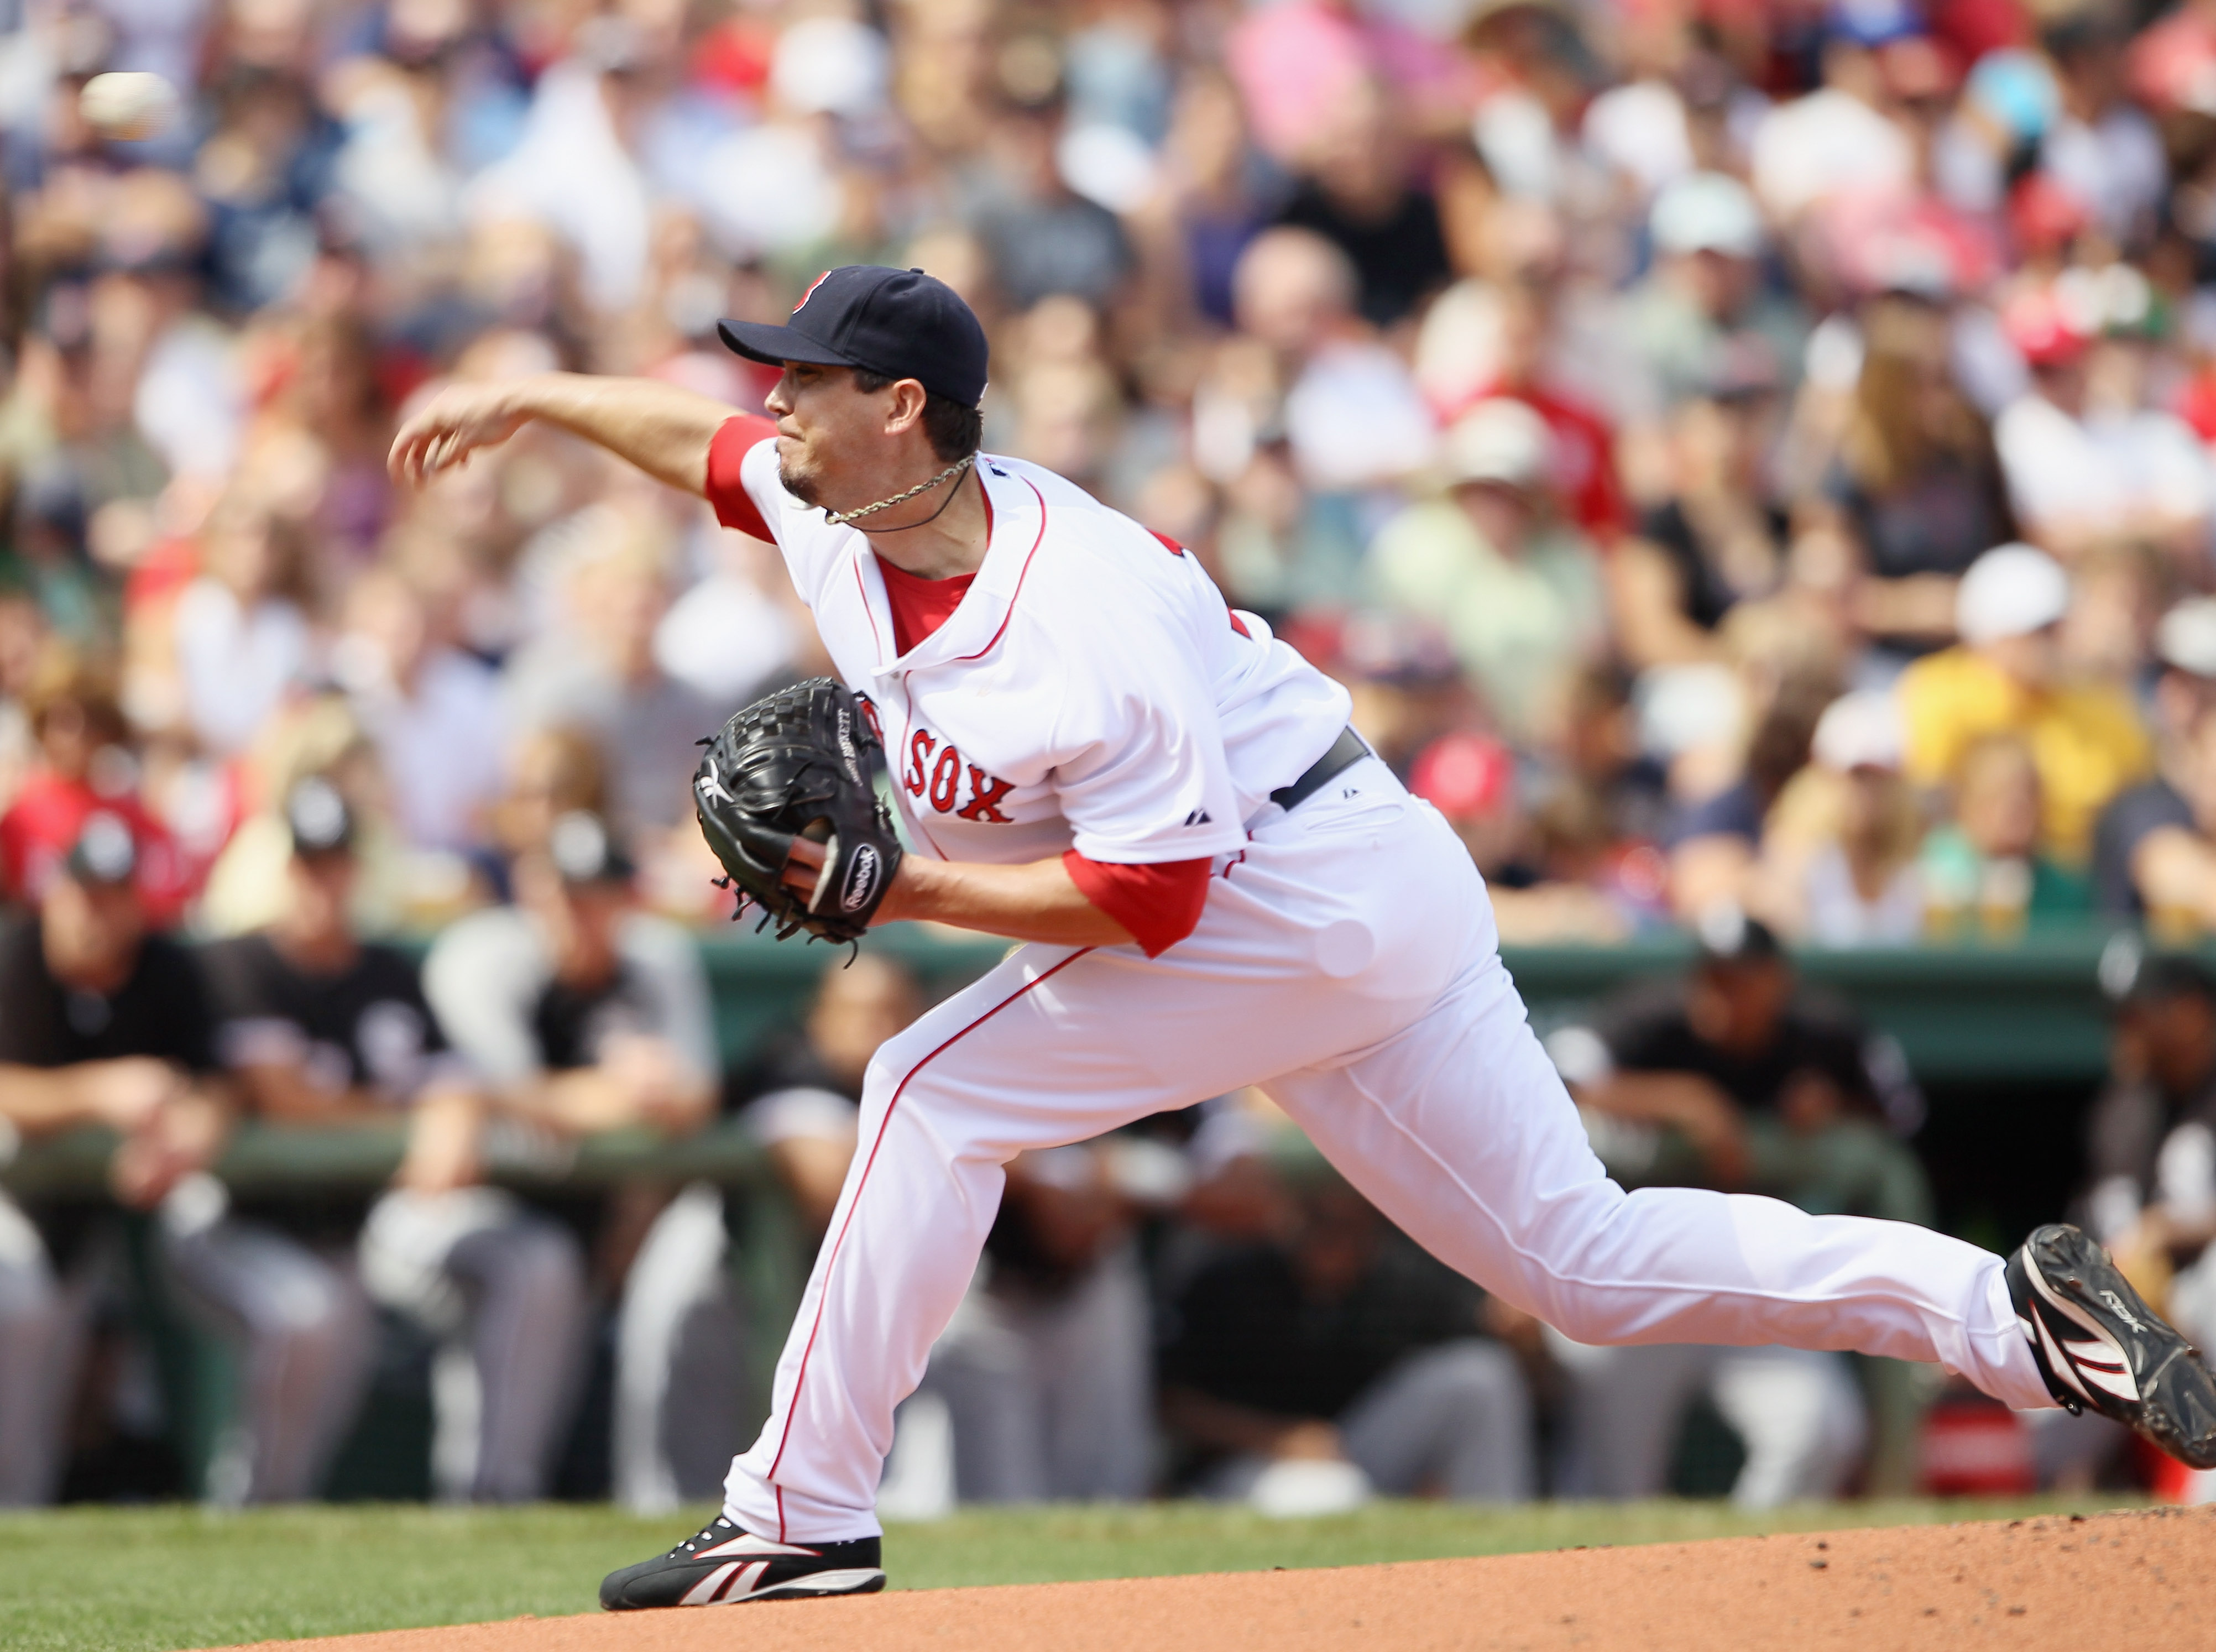 BOSTON - SEPTEMBER 05:  Josh Beckett #19 of the Boston Red Sox delivers a pitch in the first inning against the Chicago White Sox on September 5, 2010 at Fenway Park in Boston, Massachusetts.  (Photo by Elsa/Getty Images)